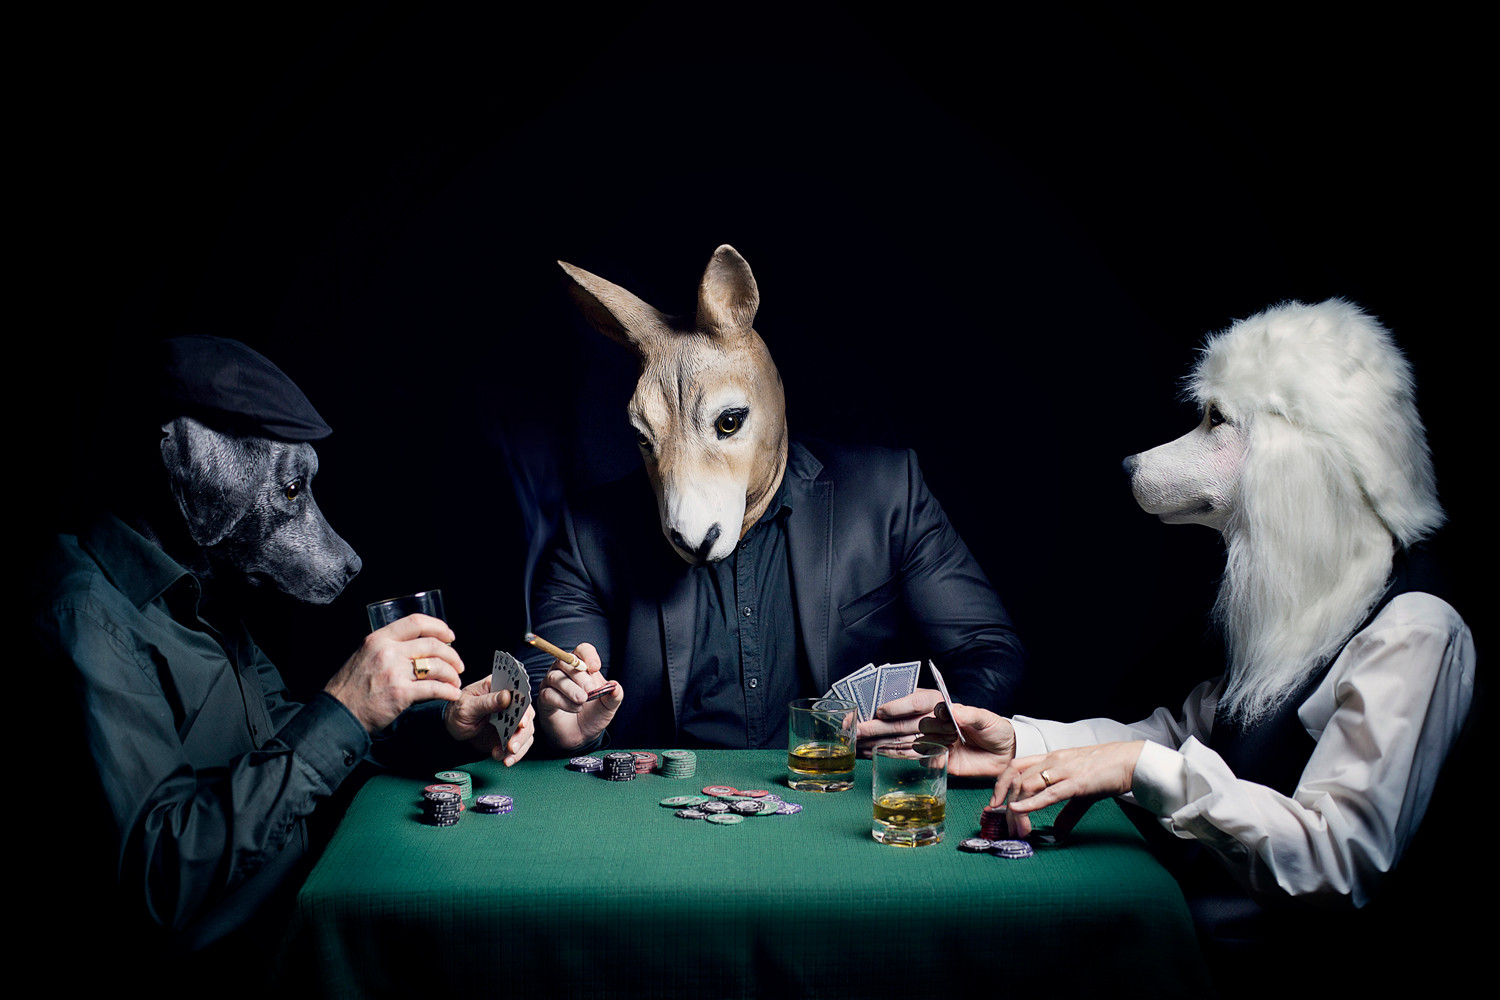 THE POKER GAME ©2017